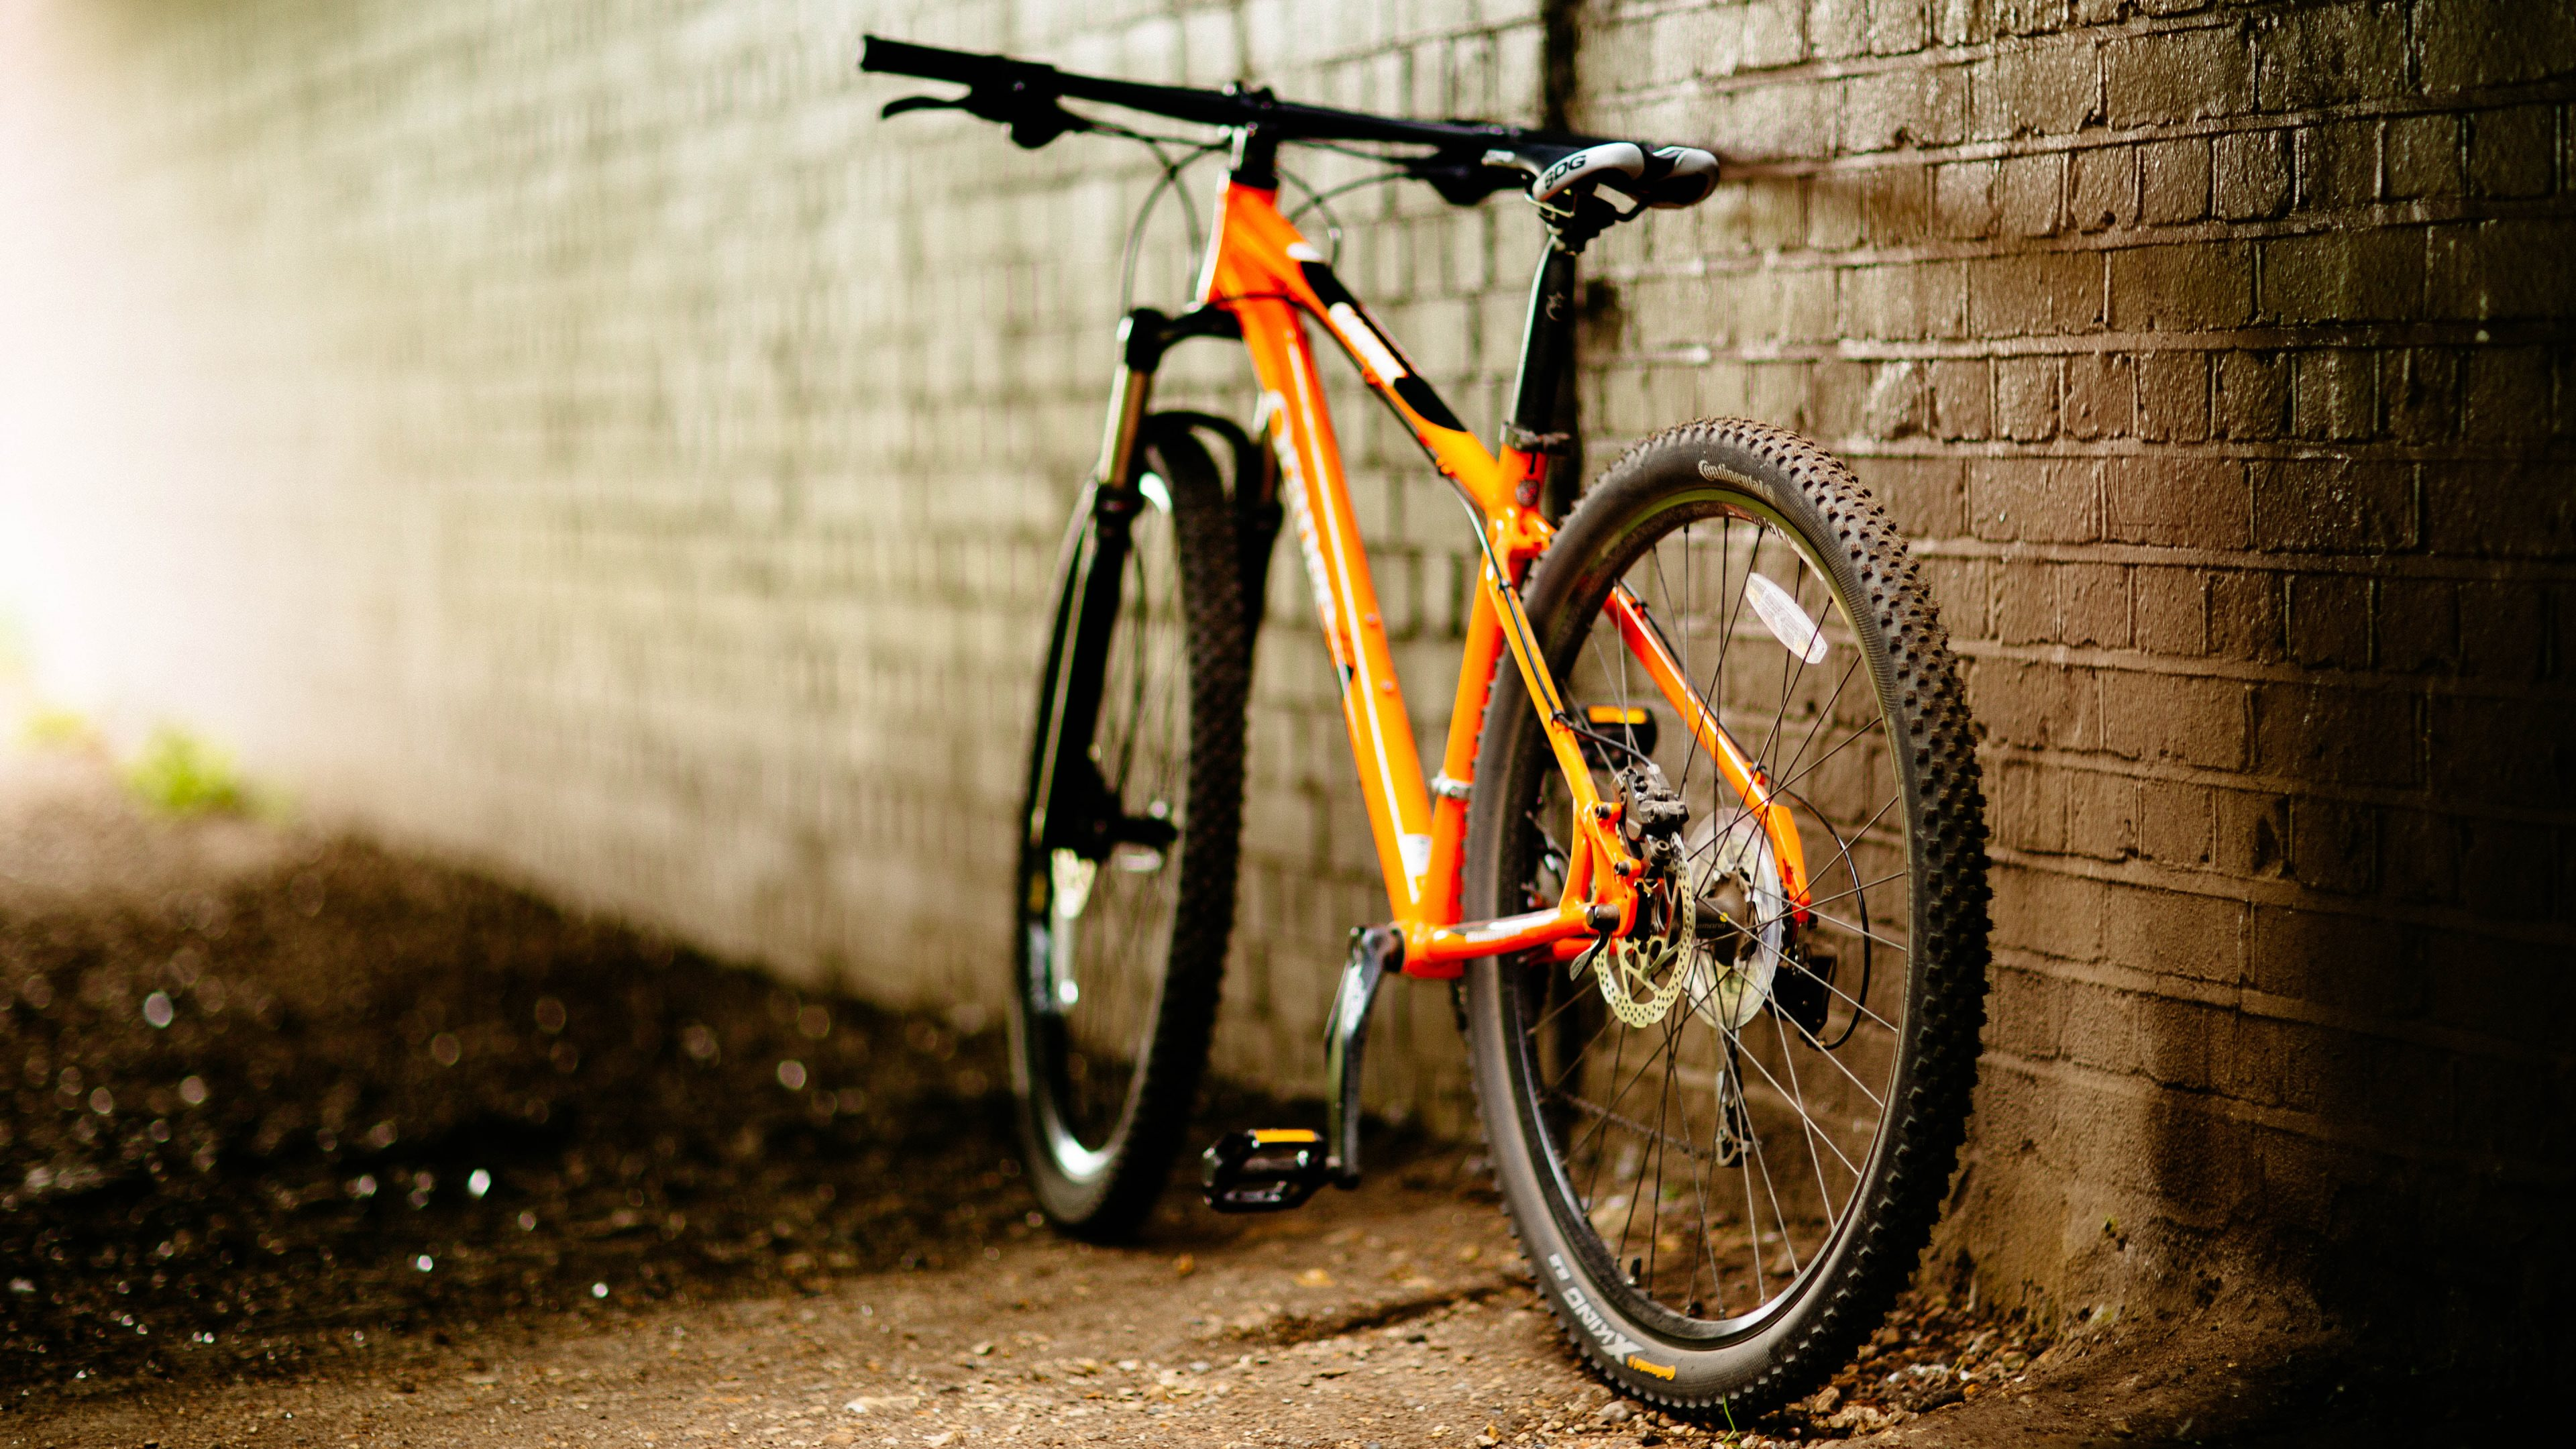 120 Bicycle Hd Wallpapers Background Images Wallpaper Abyss